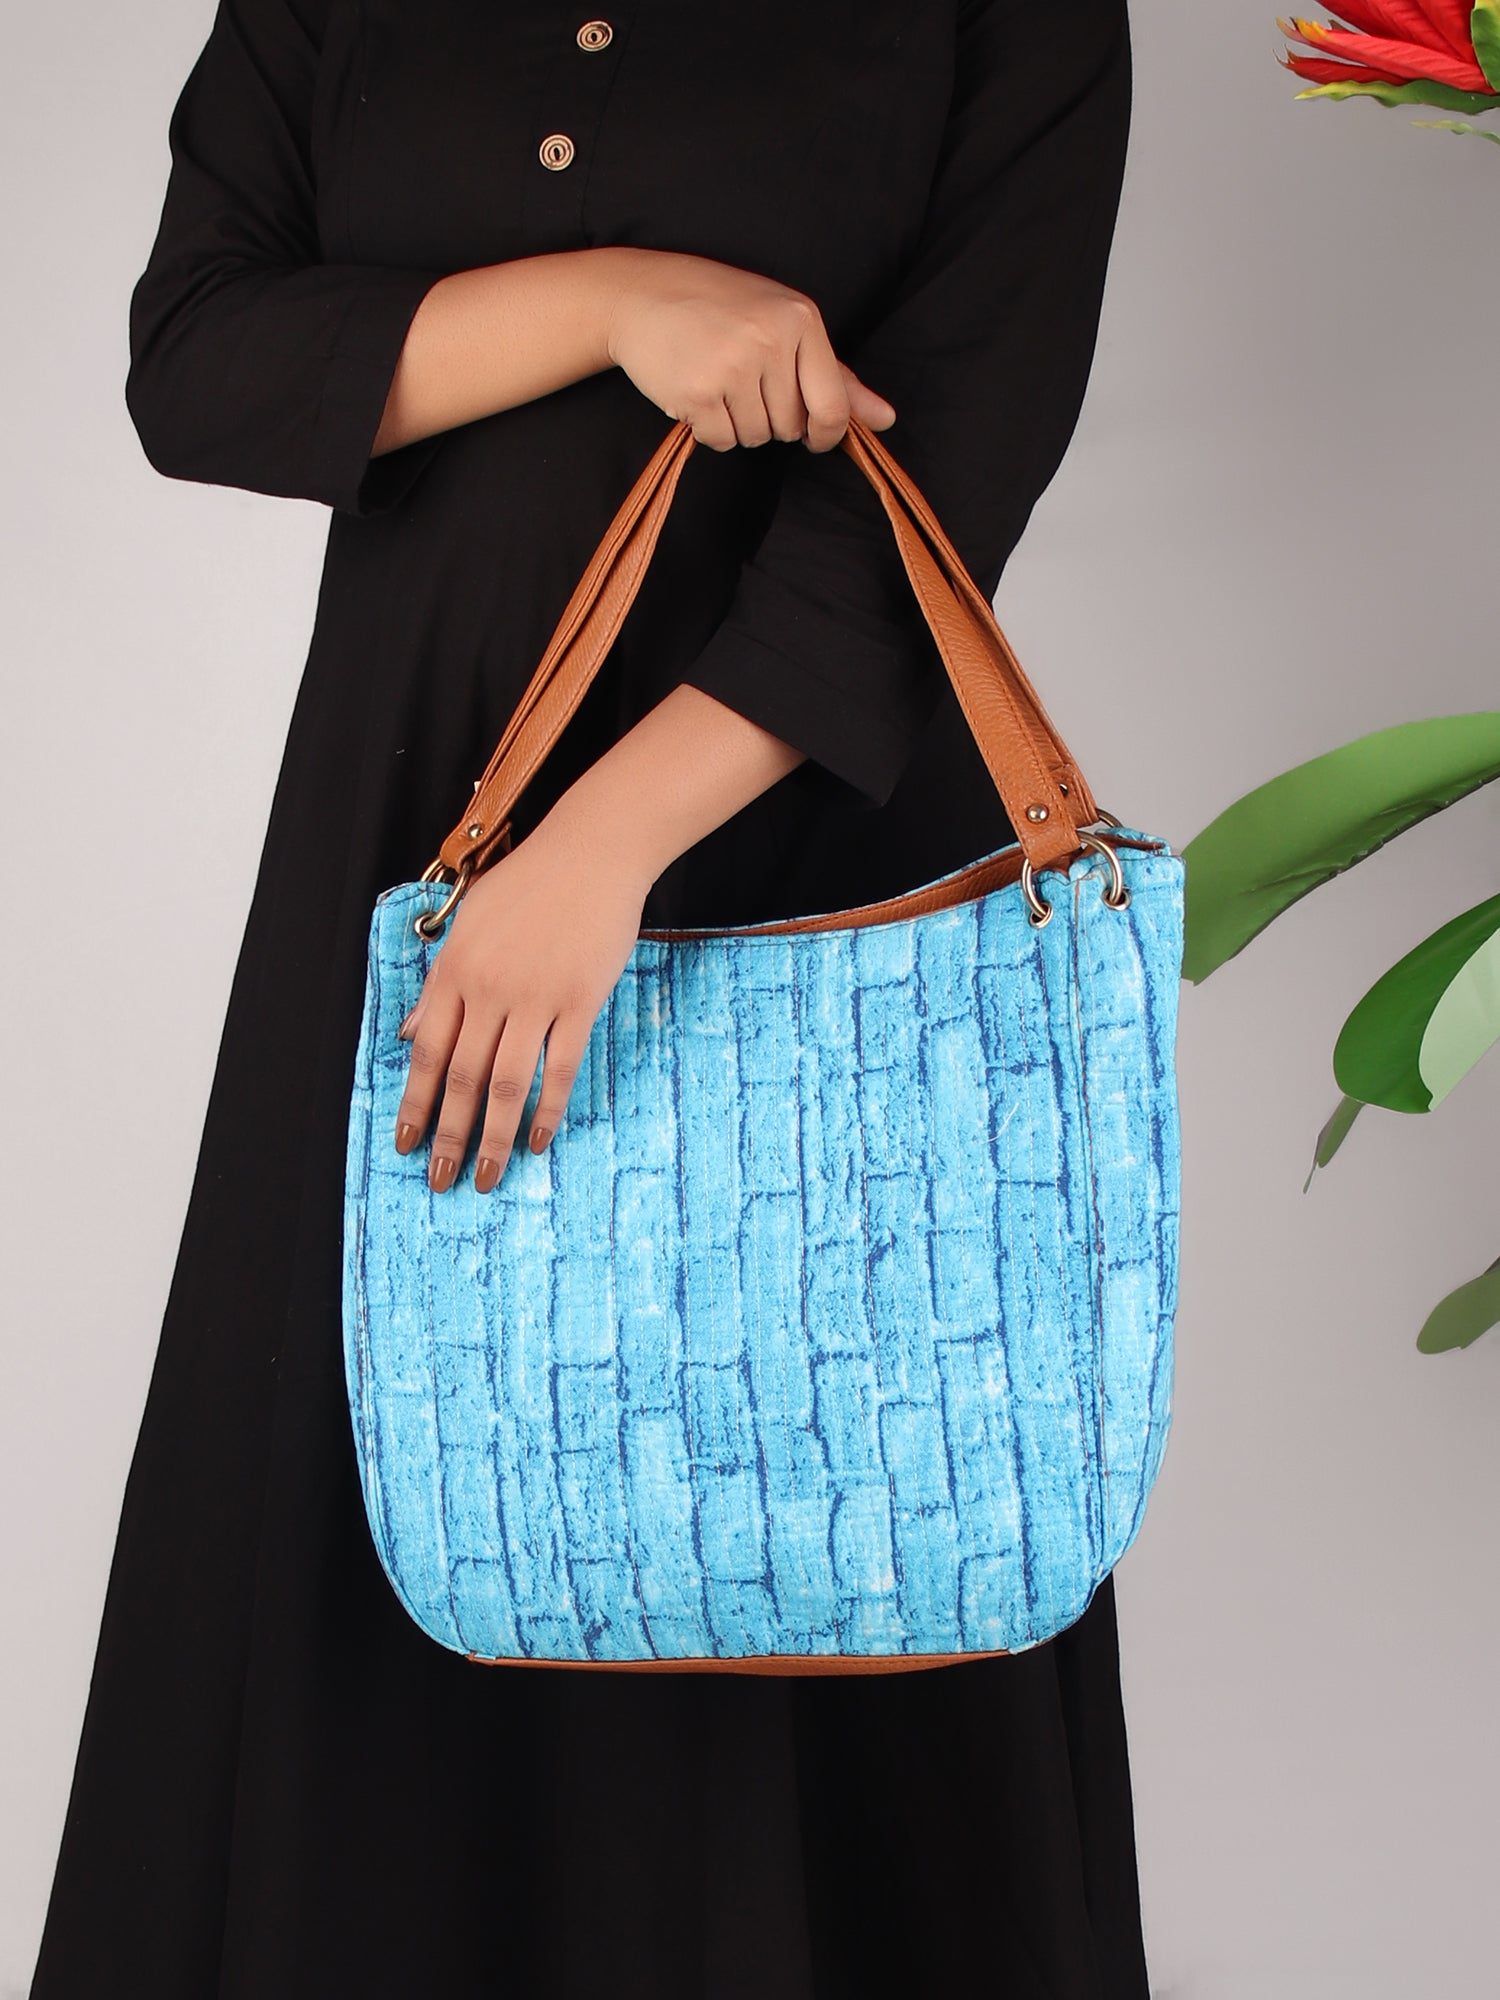 SKY HIGH FEELINGS HANDBAG